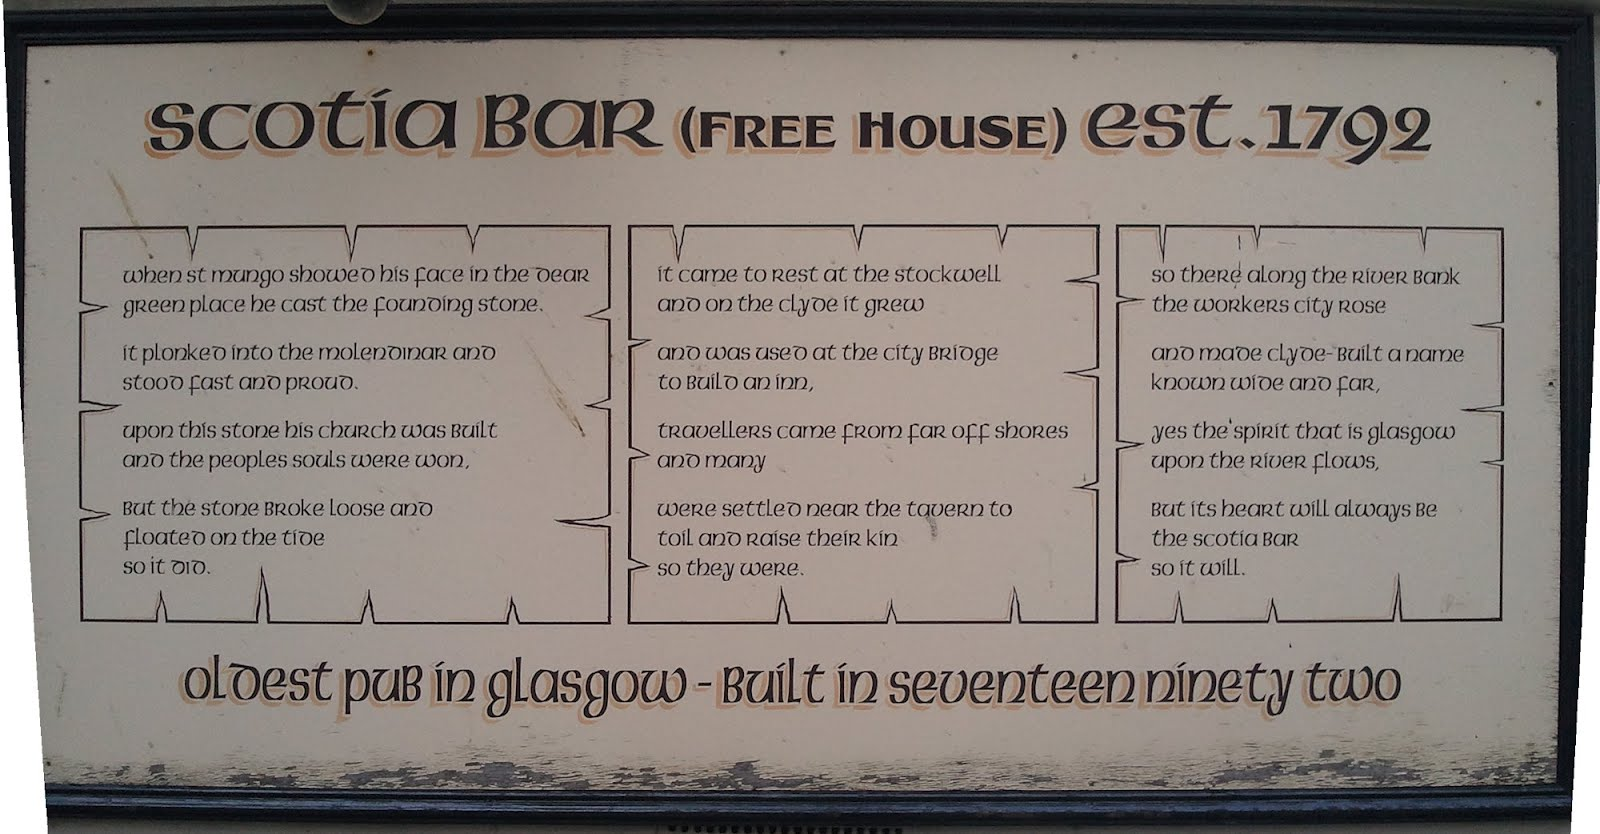 Scotia Bar, Glasgow